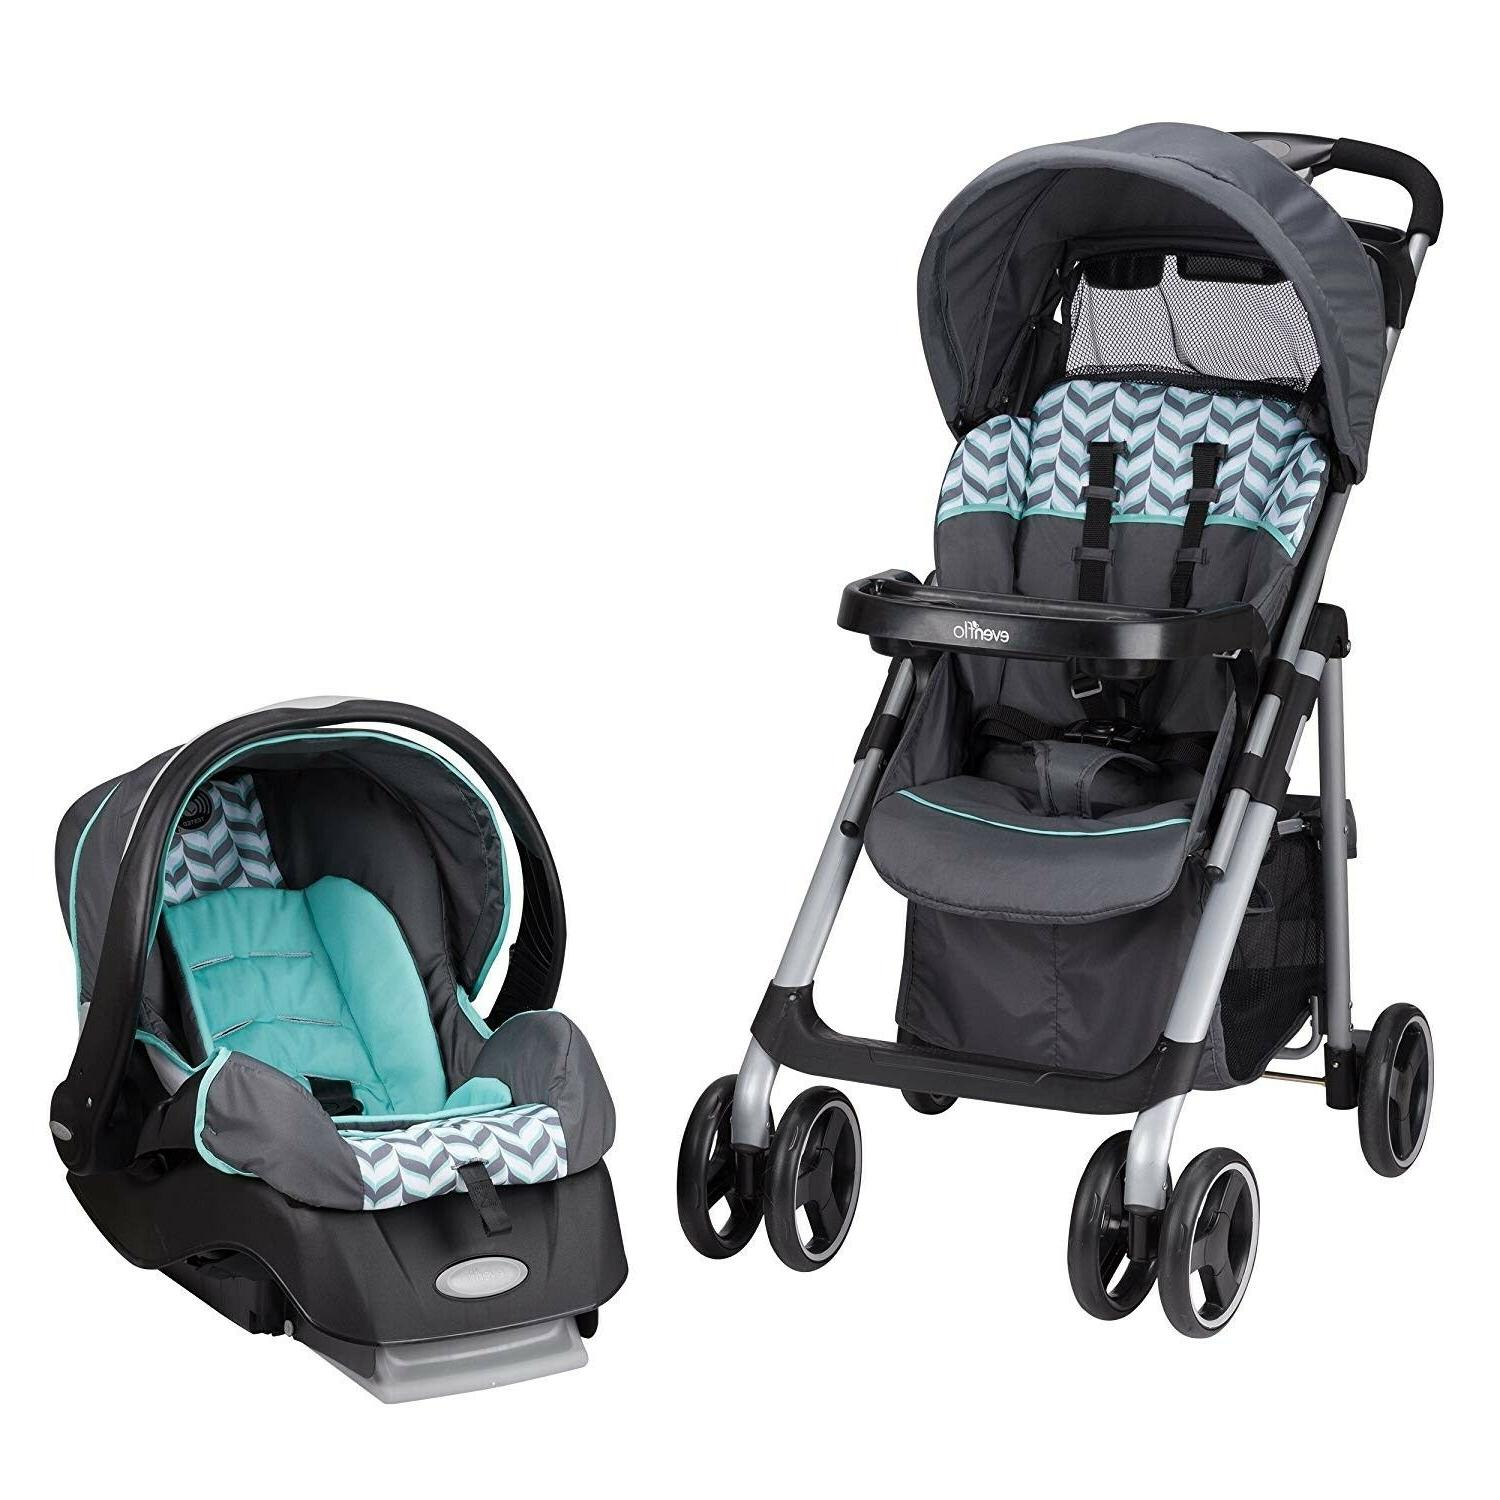 Evenflo Combo Set Travel Stroller with Car Swing Playard Chair